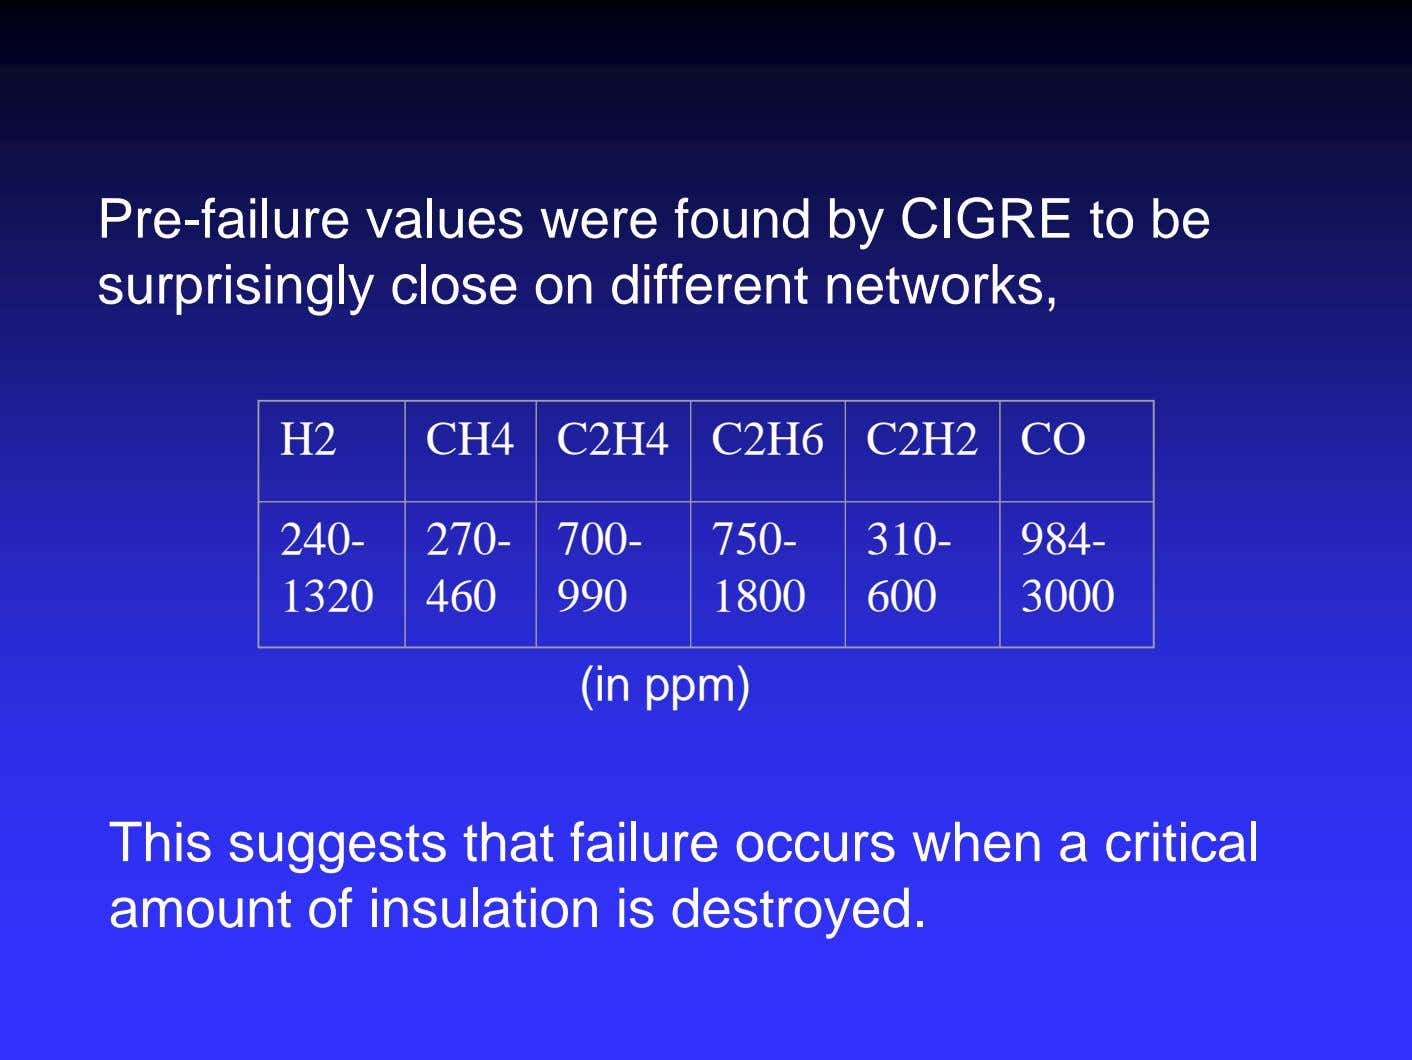 Pre-failure values were found by CIGRE to be surprisingly close on different networks, H2 CH4